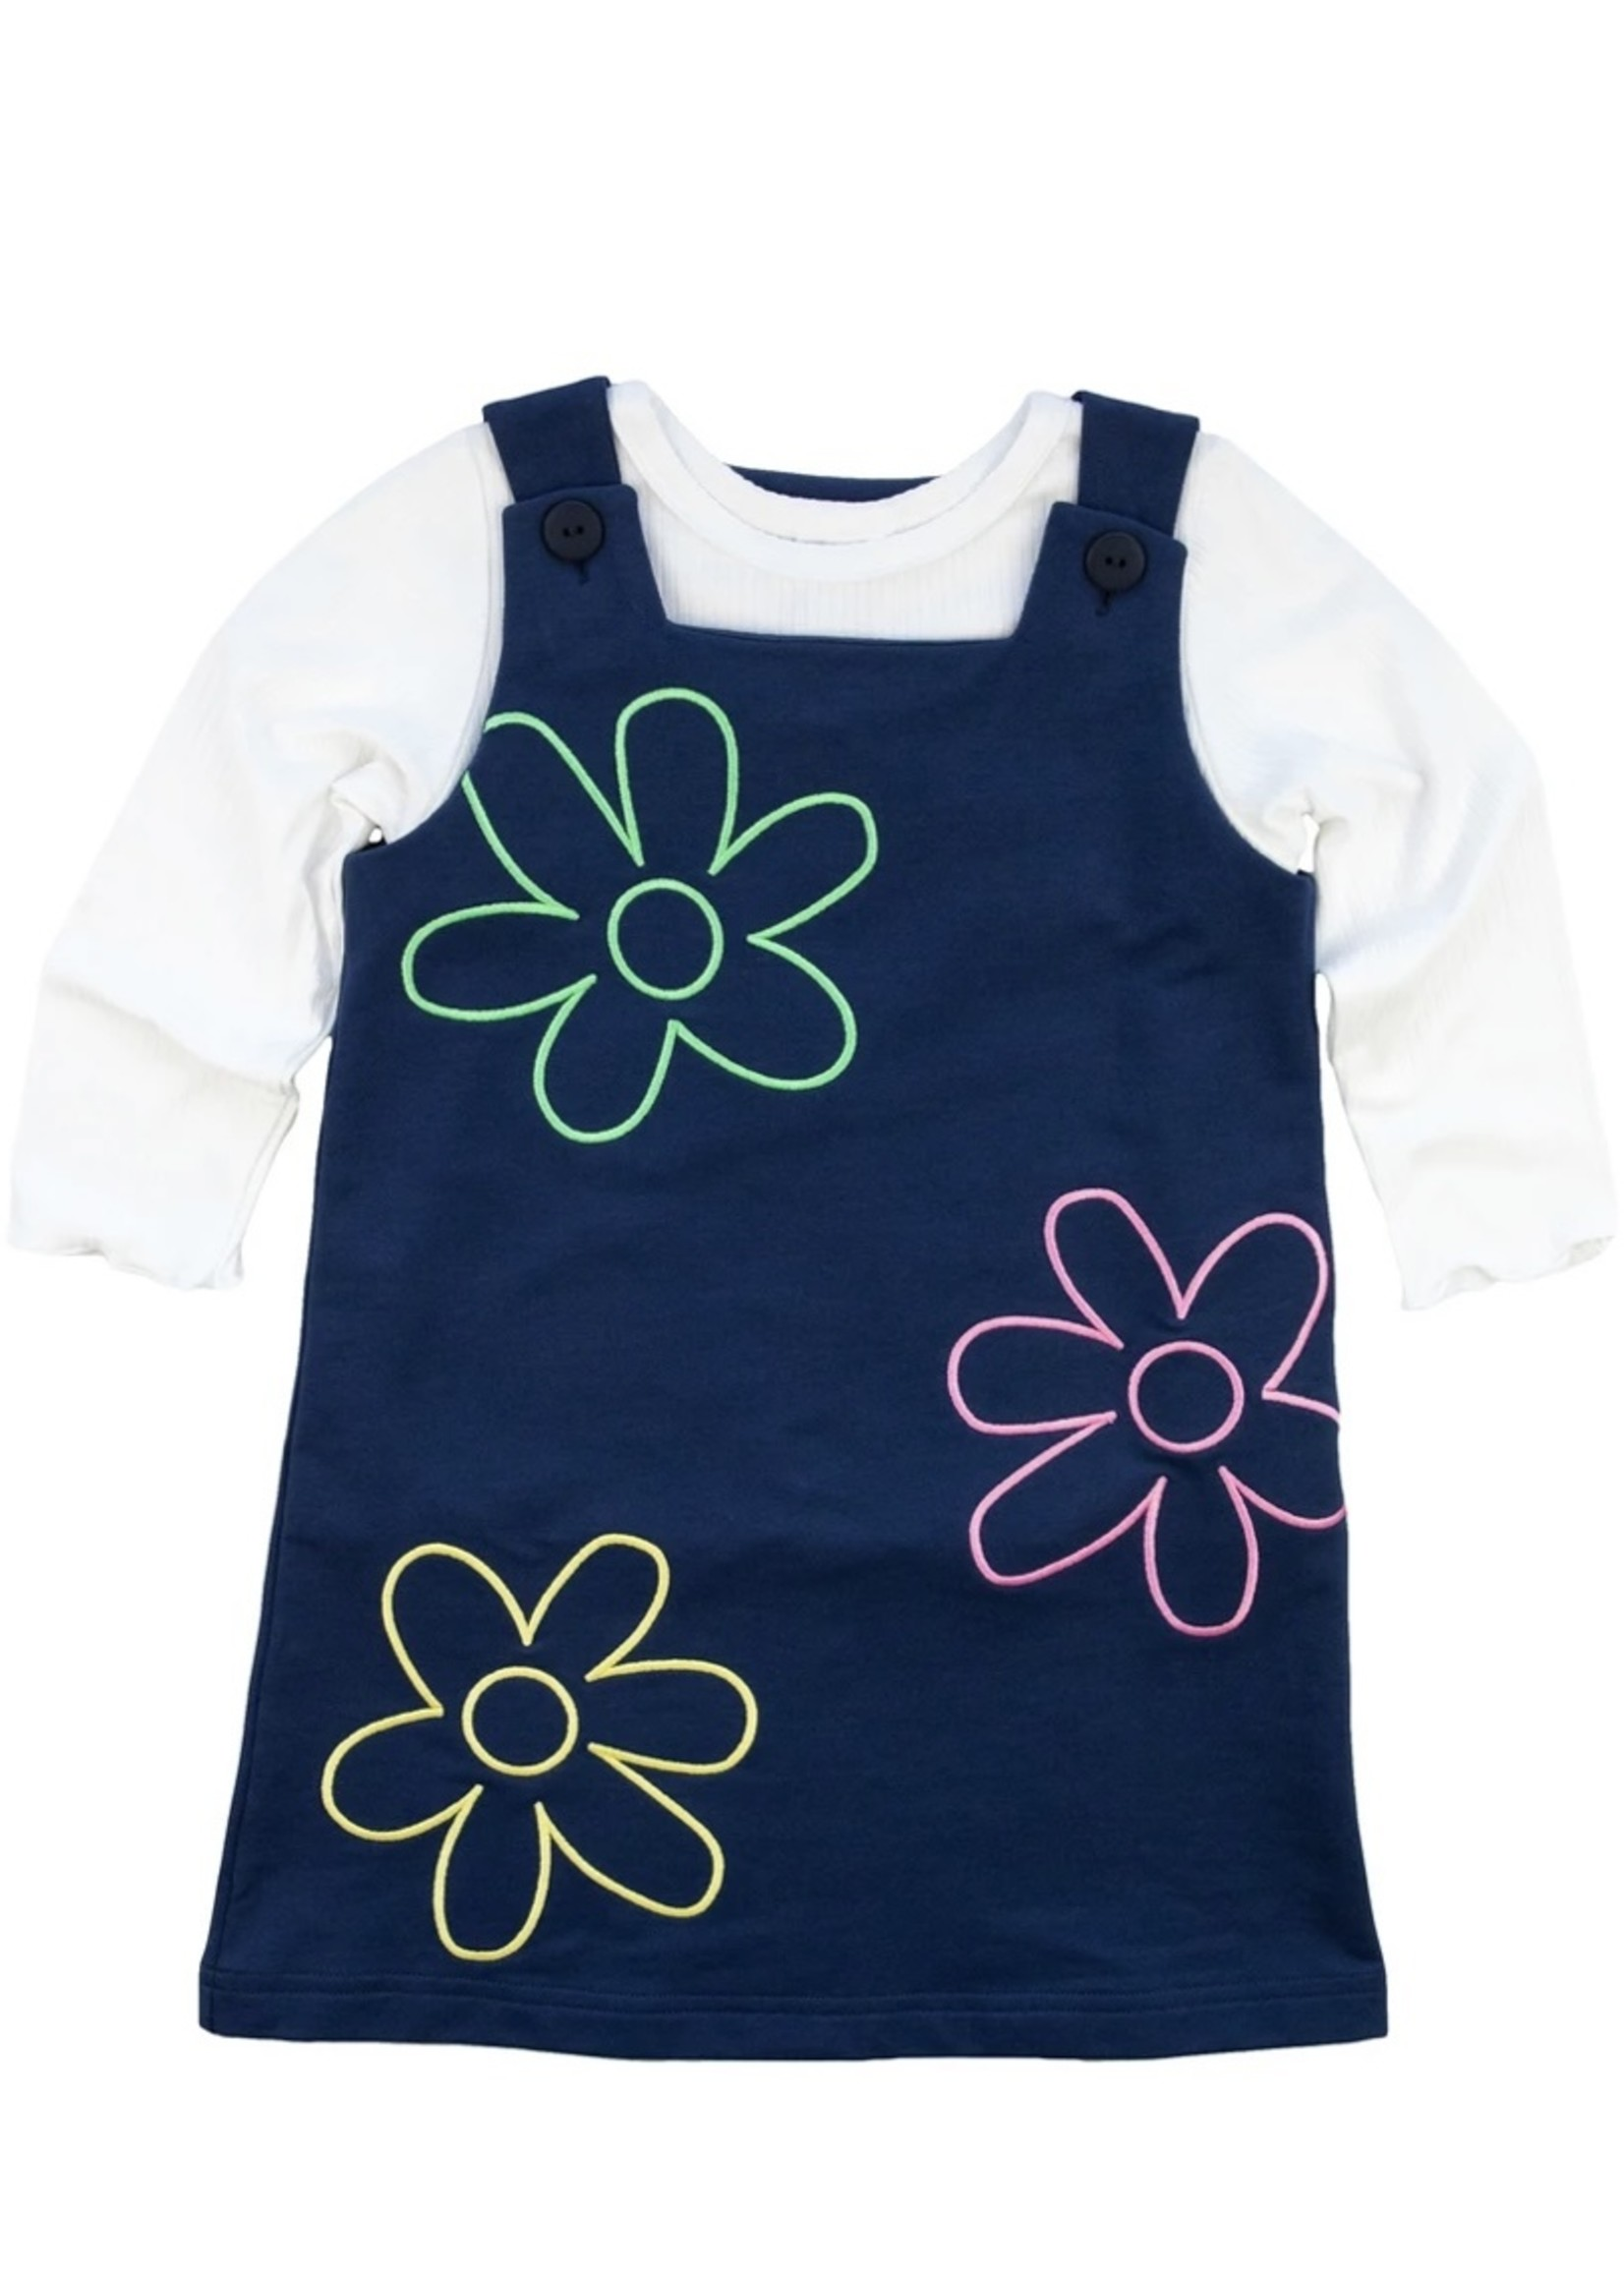 Navy French Terry Jumper Set with Flower Outlines